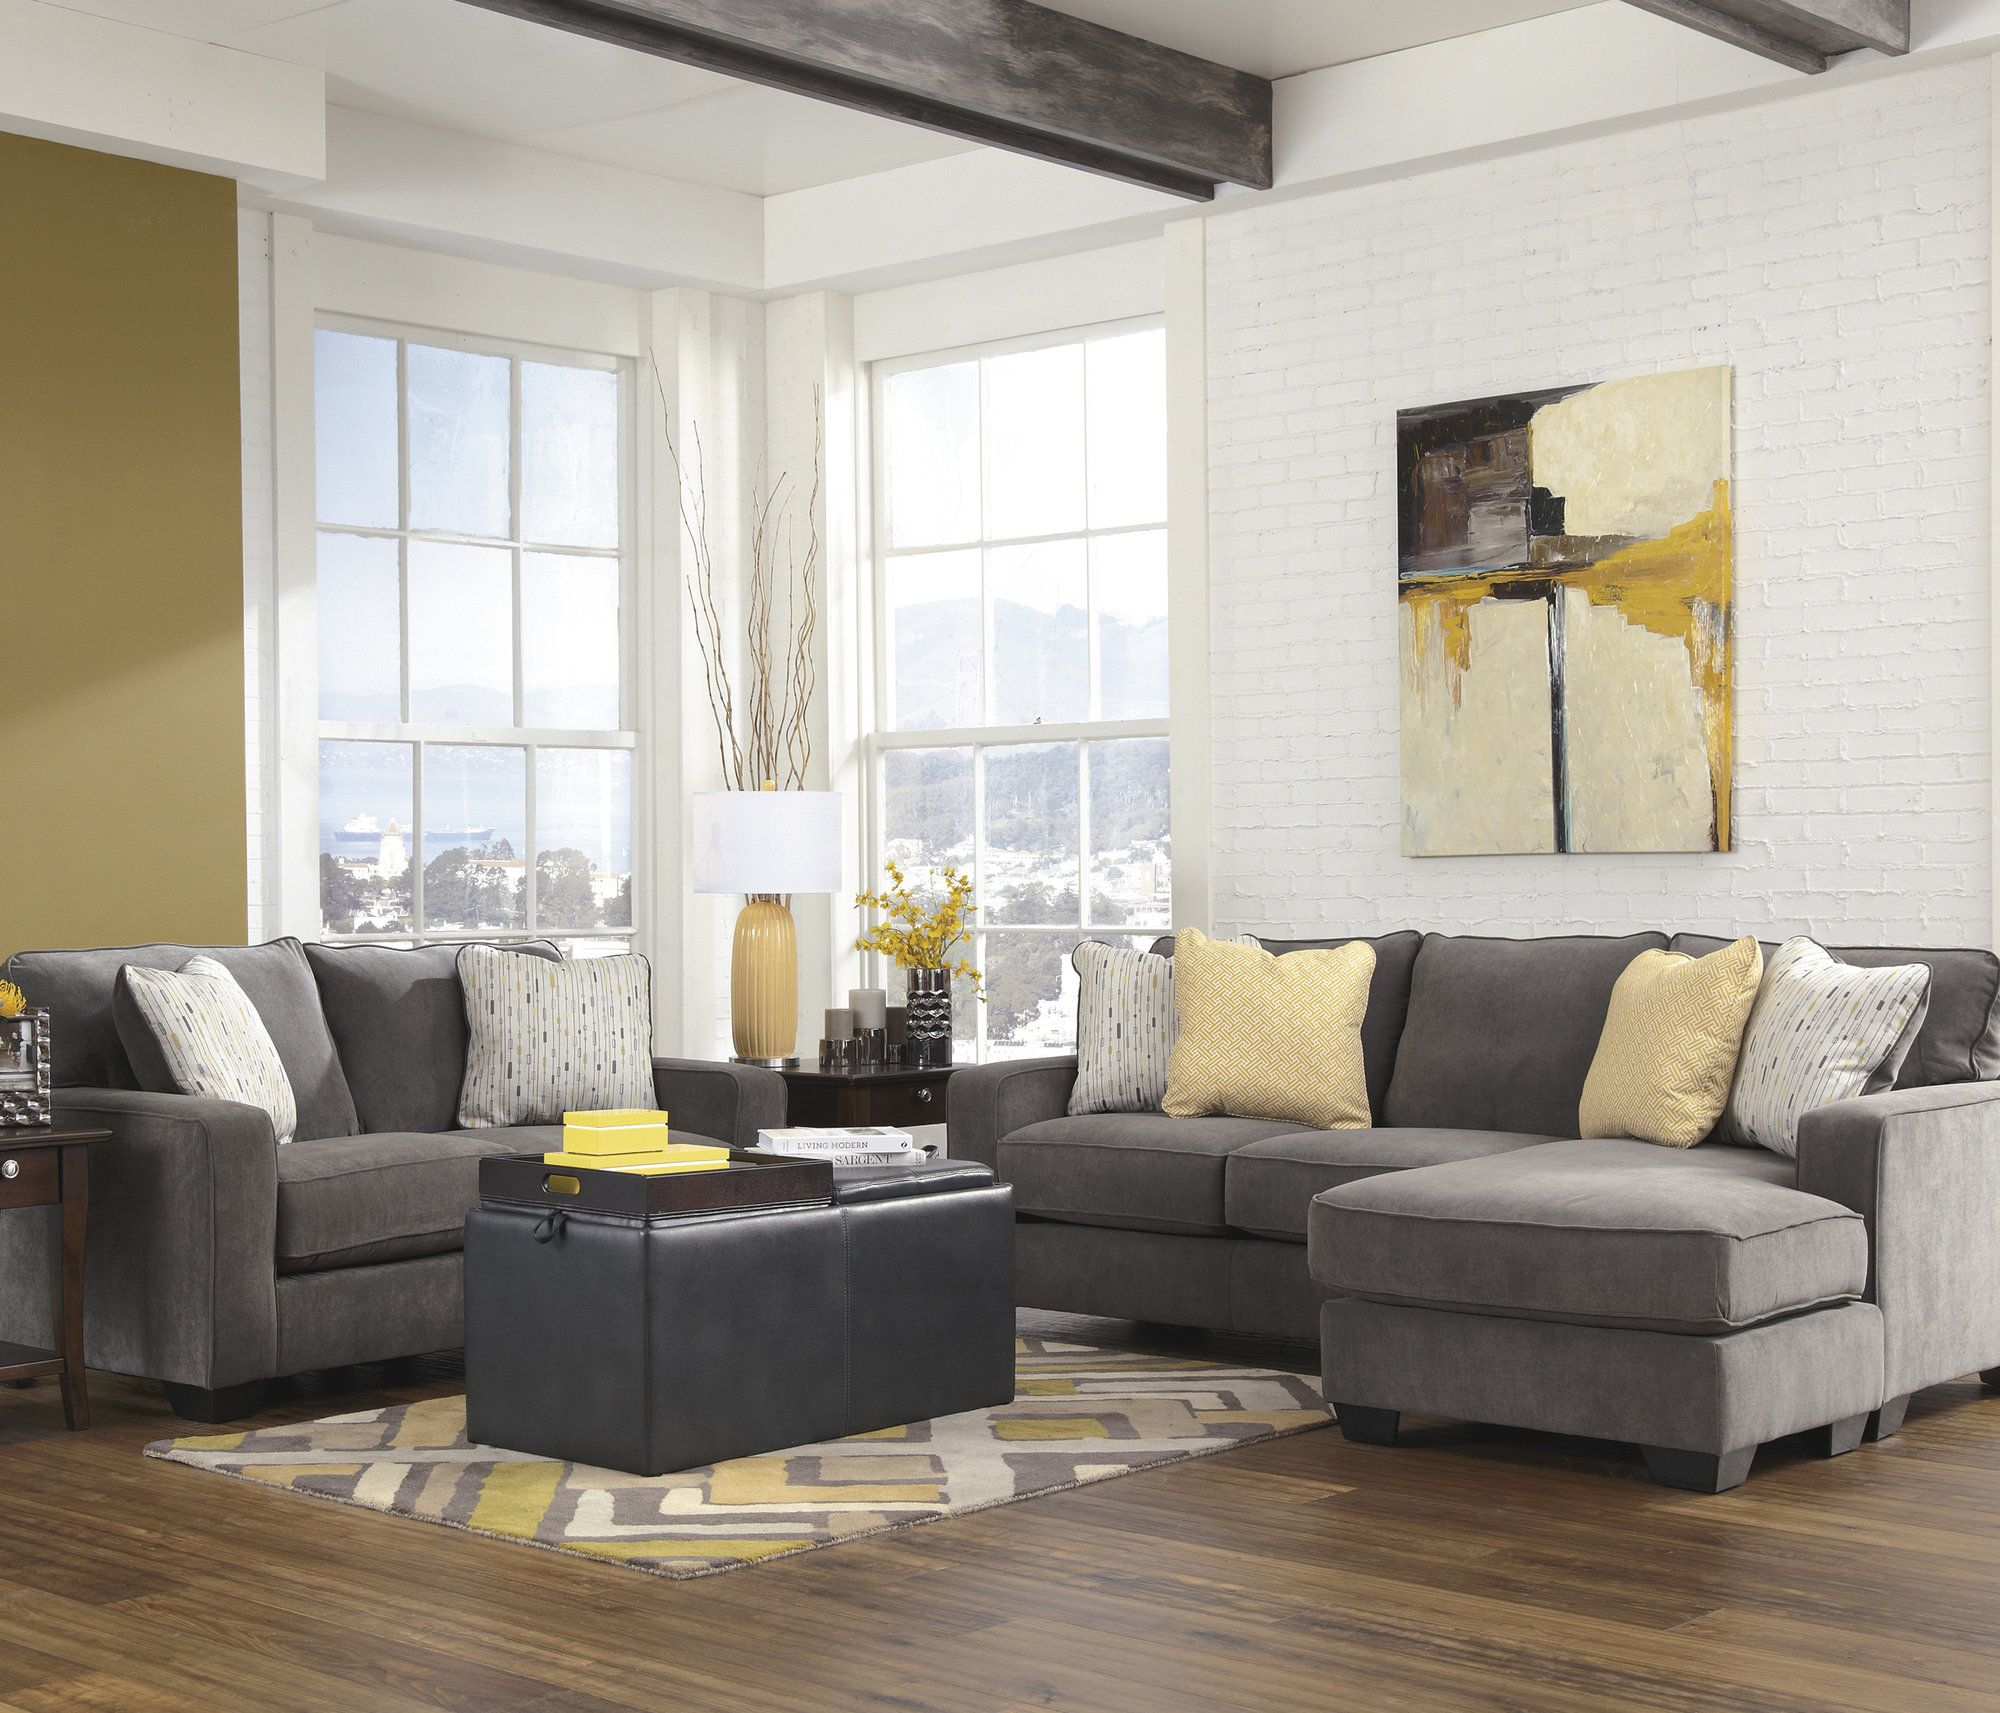 Best Hodan Living Room Set Grey Sofa Living Room 400 x 300